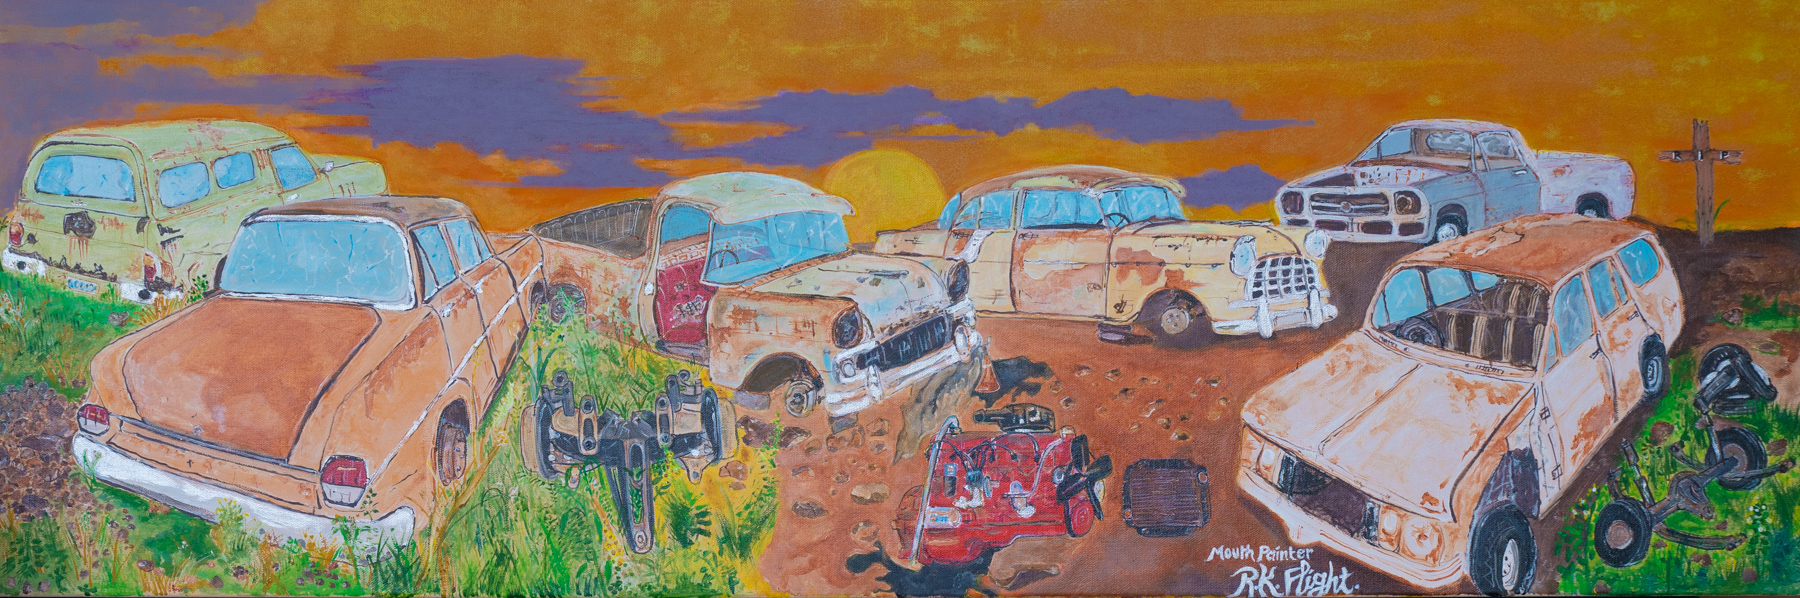 Painting of rusted old cars with an orange and purple skye